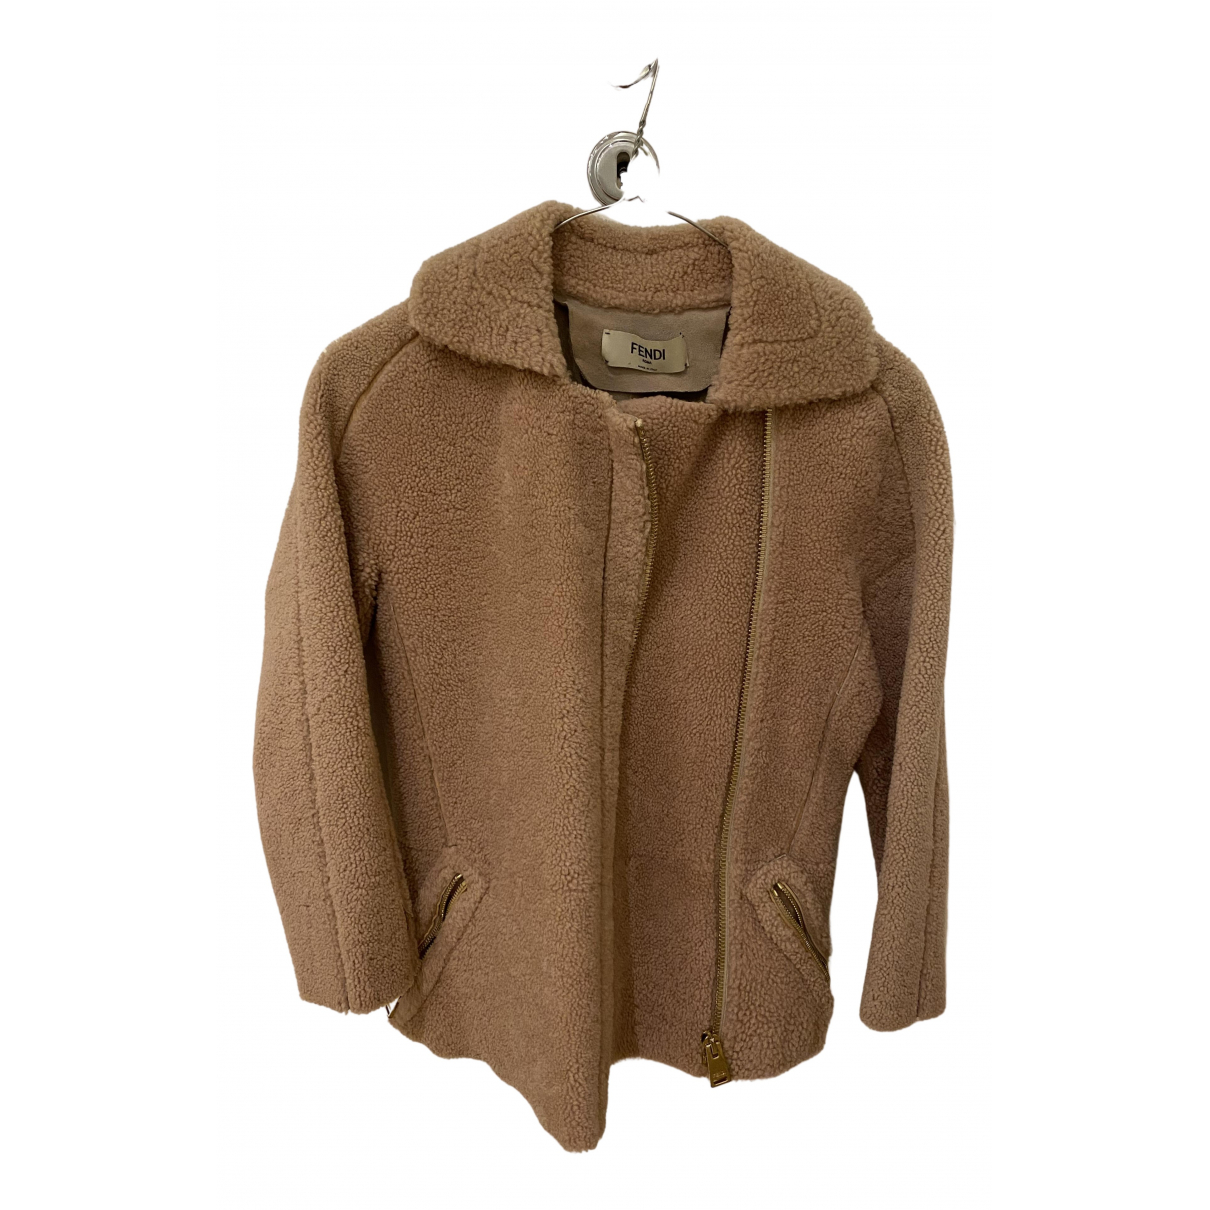 Fendi N Brown Leather jacket for Women 36 IT